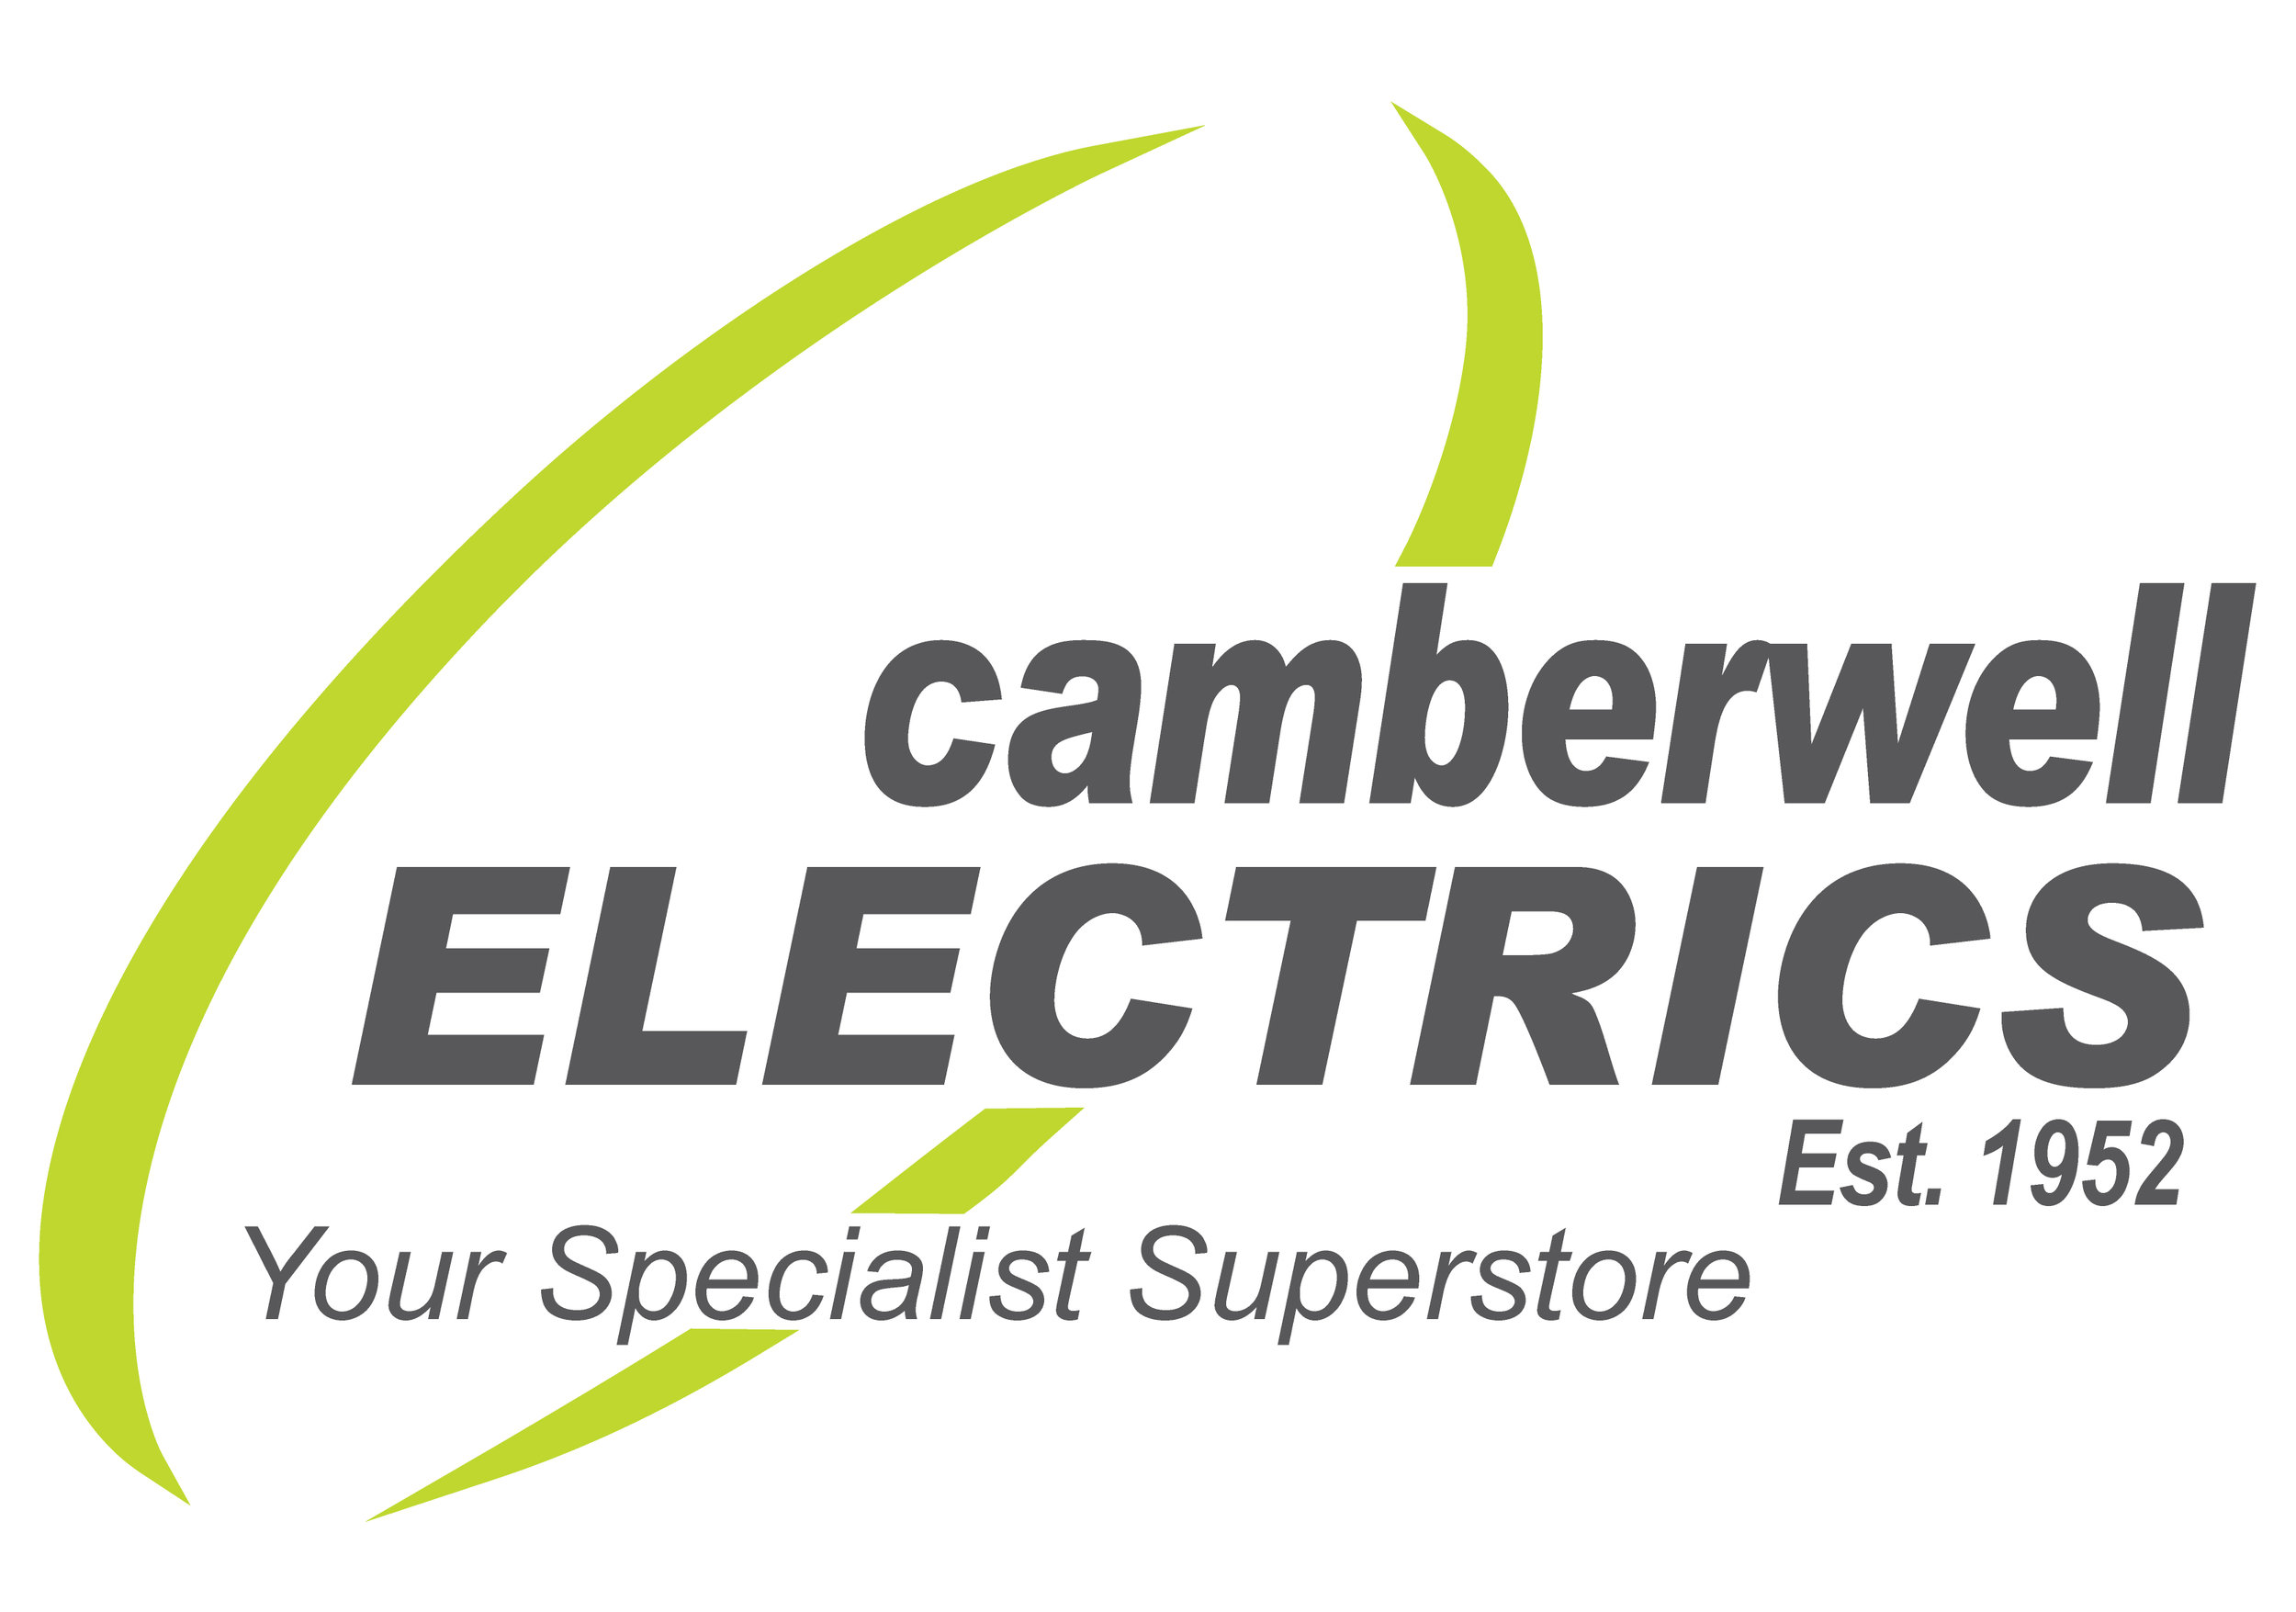 Camberwell_Electric_Logo_November2018.jpg